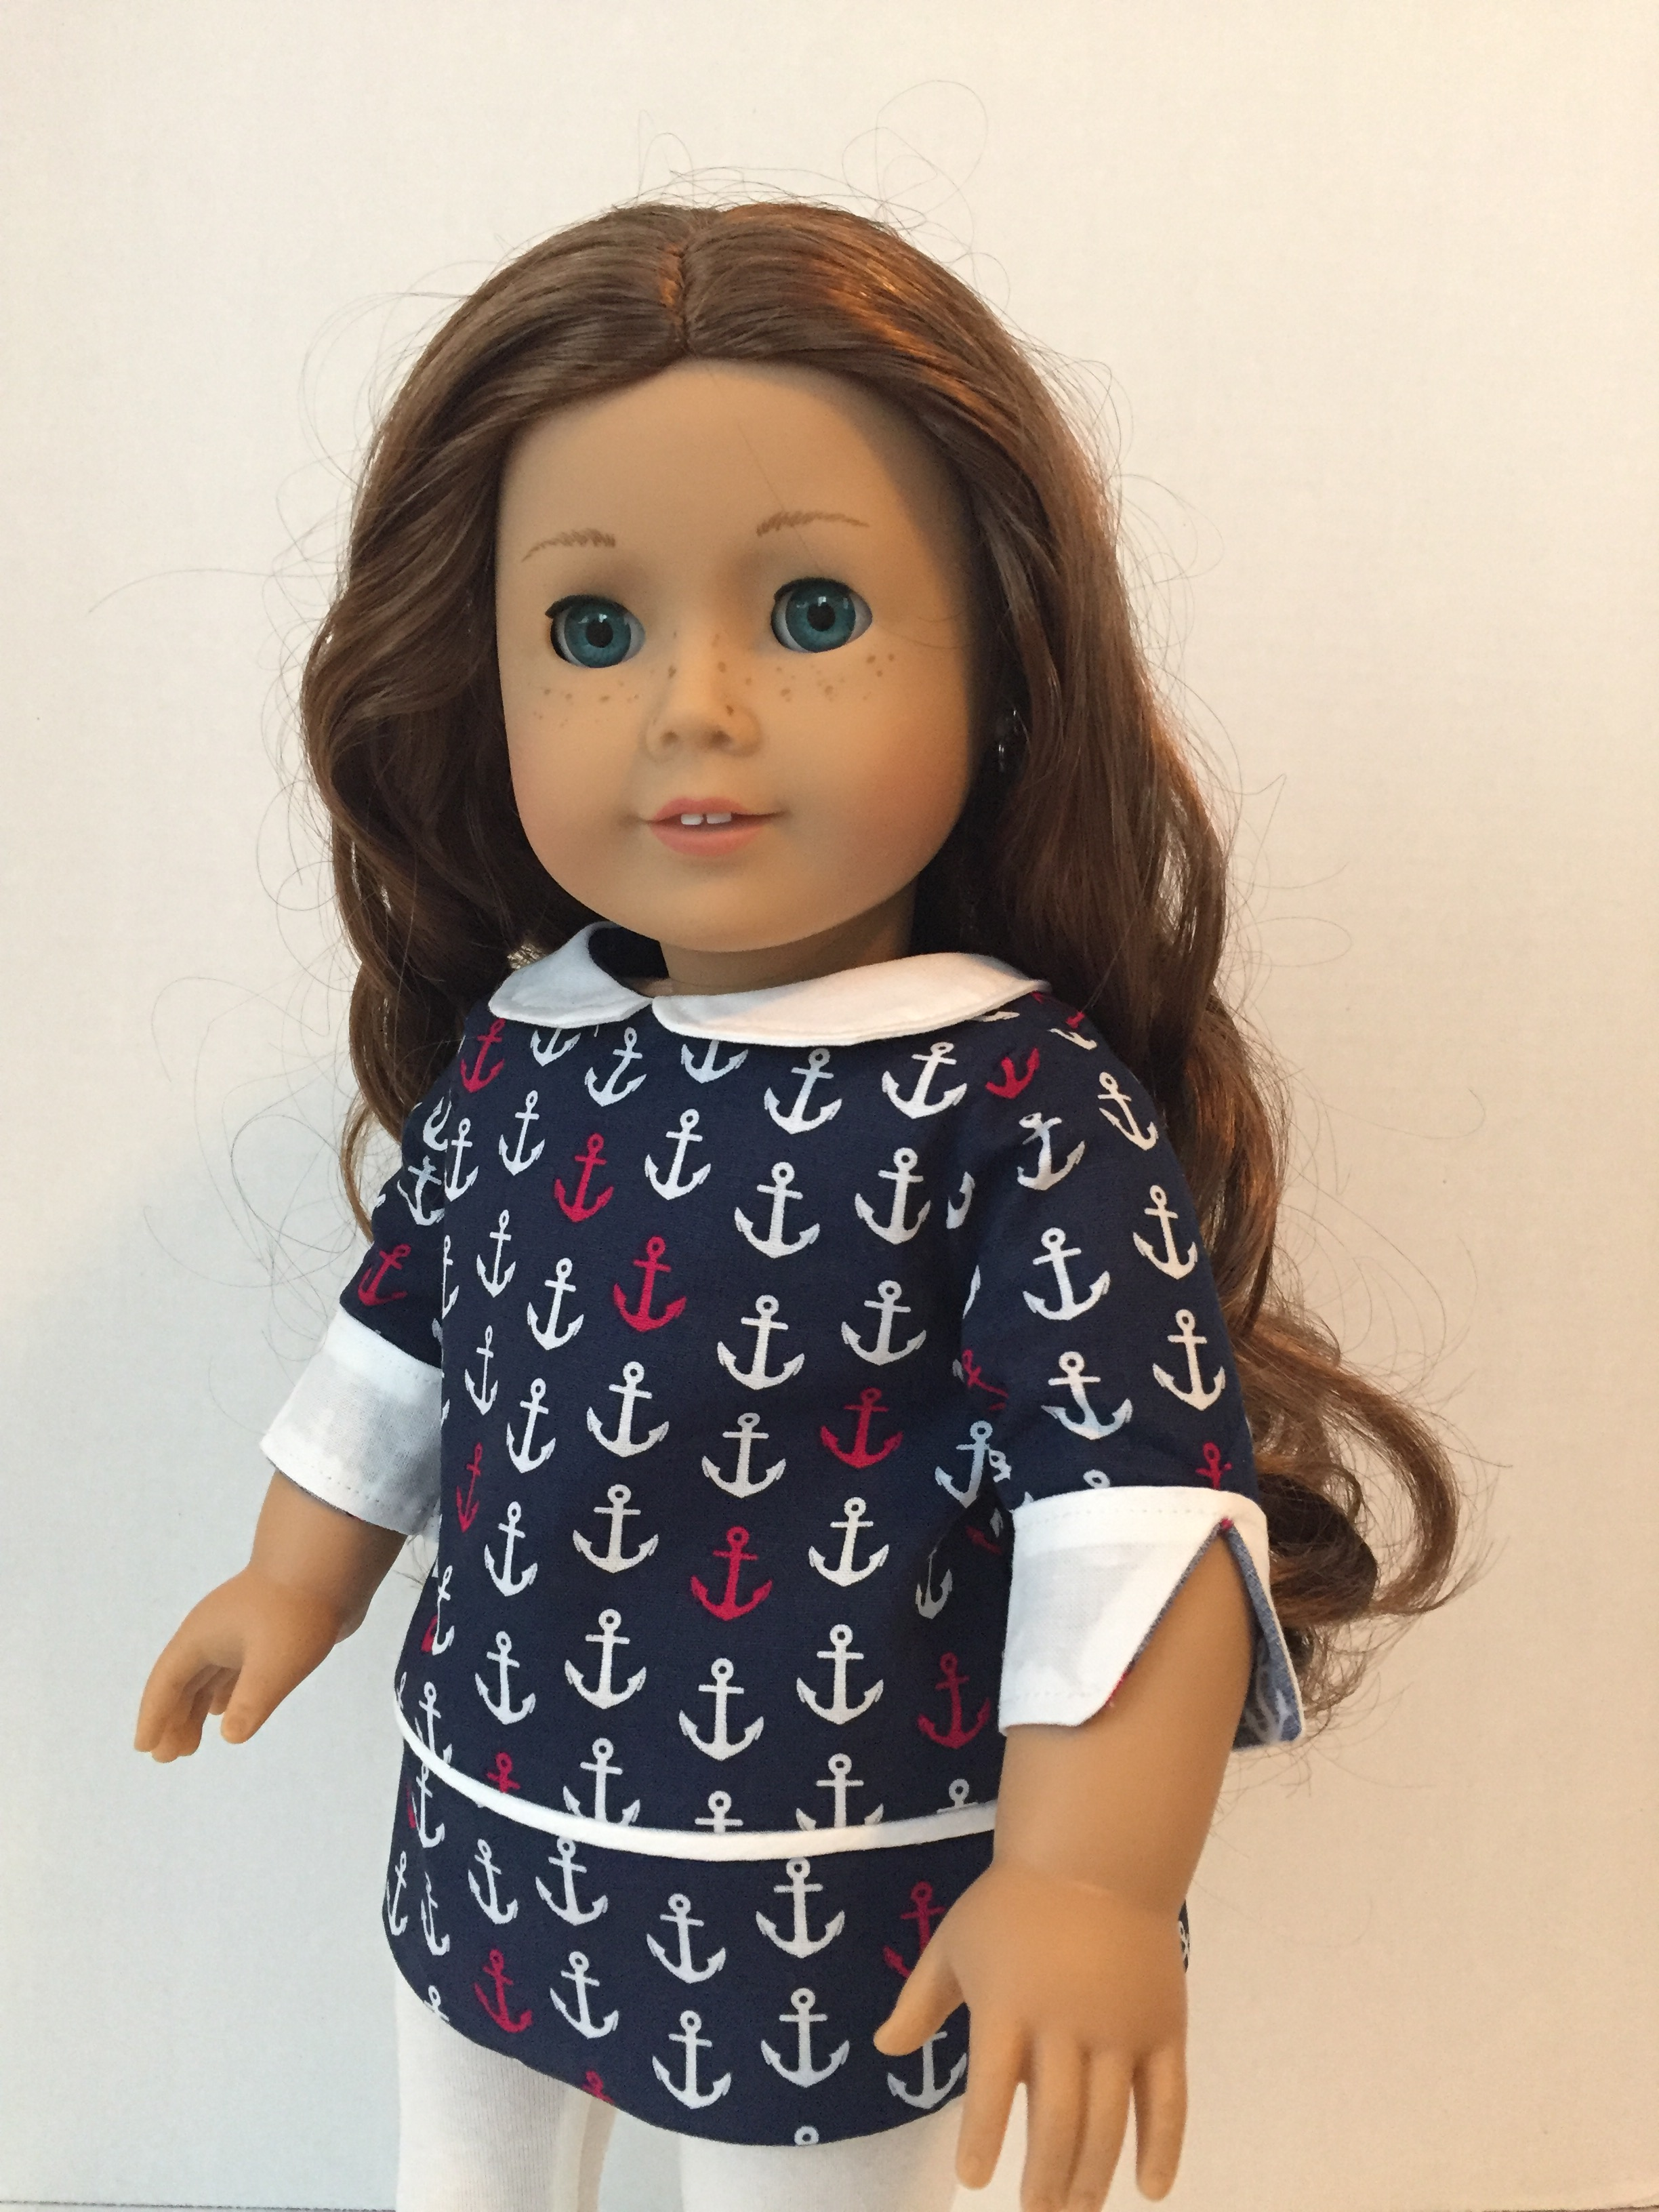 www.ohsewkat.com pdf sewing patterns for dolls to diy doll clothes for American Girl dolls and Our Generation Dolls.